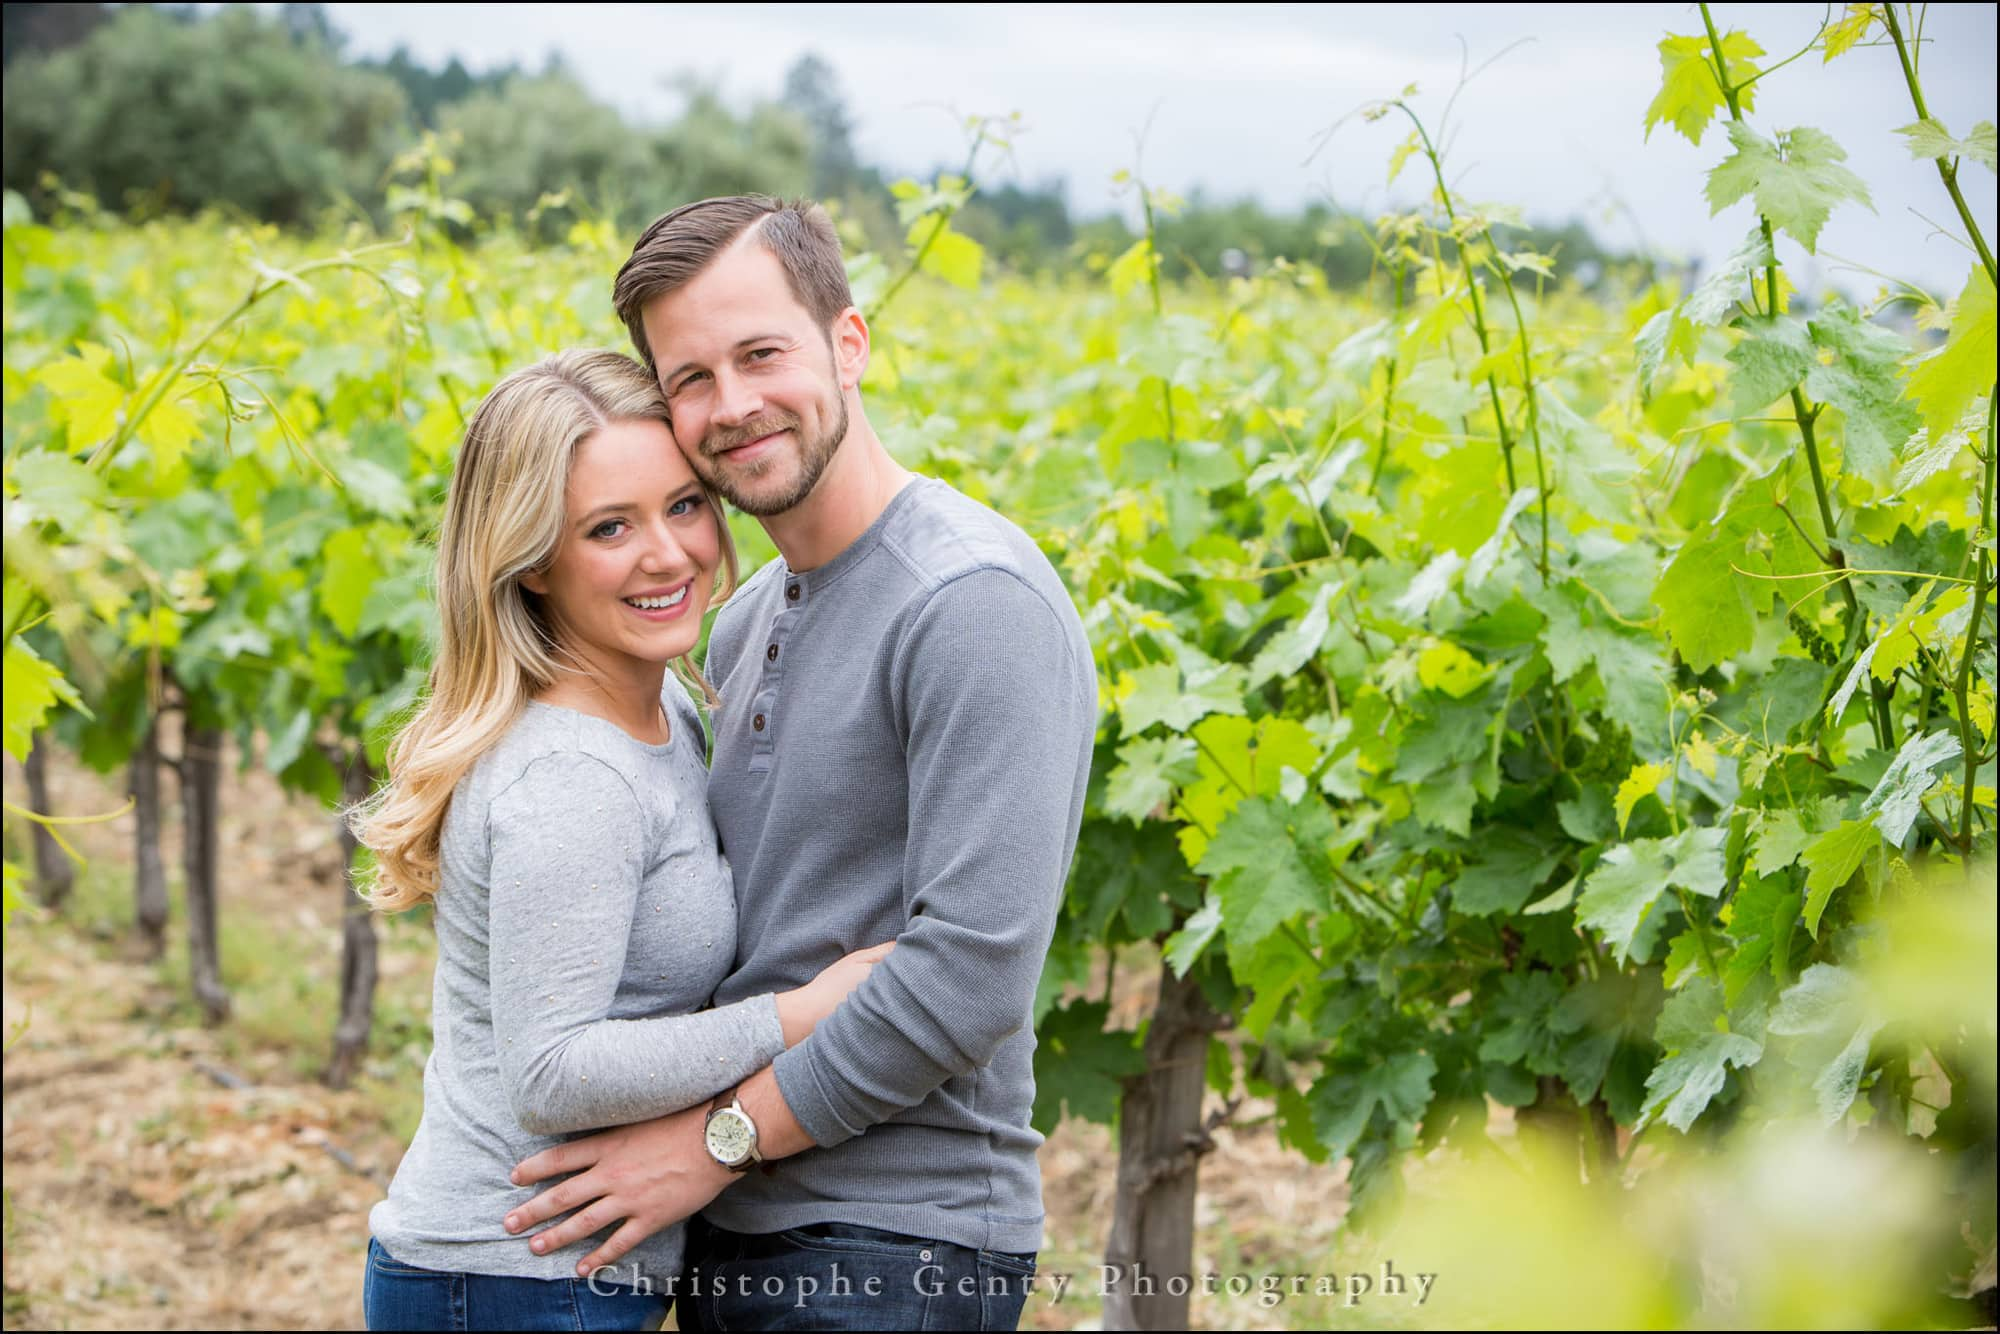 Engagement Photography in the vineyards at Castello di Amorosa in The Napa Valley, CA